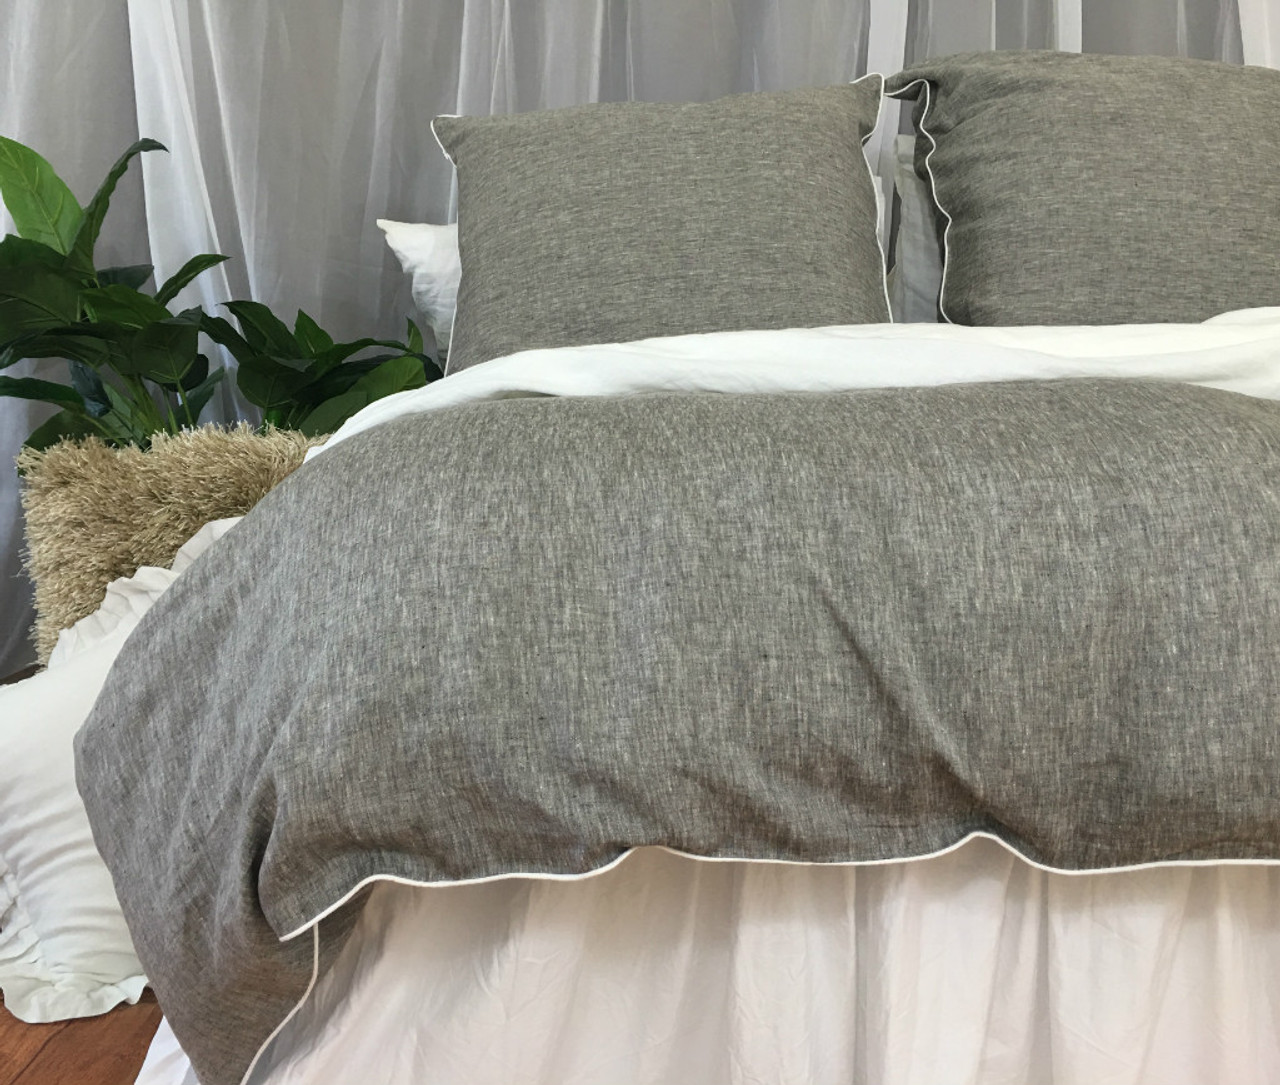 Marvelous Chambray Grey Linen Duvet Cover With Soft White Piping, Available In Twin,  Full, Queen, King, Calif.